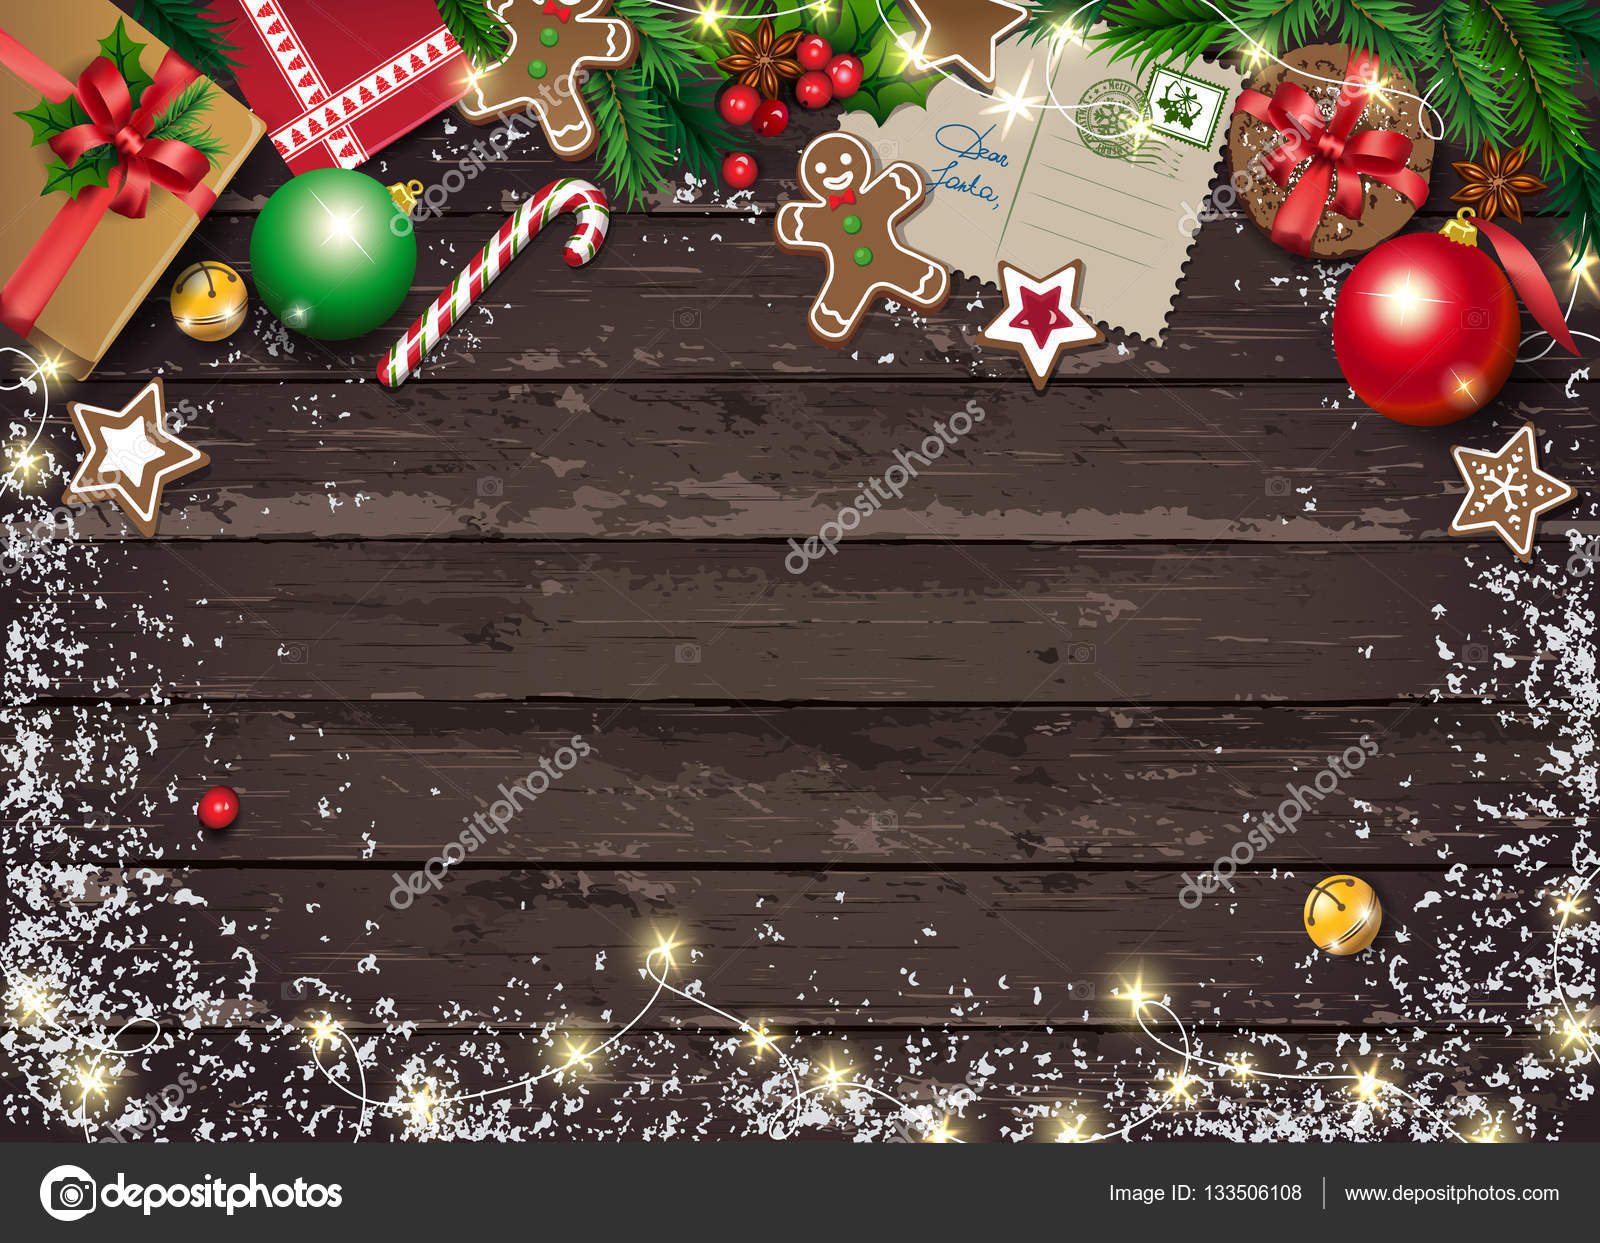 Christmas Greeting Card With Letter To Santa And Presents Cookies